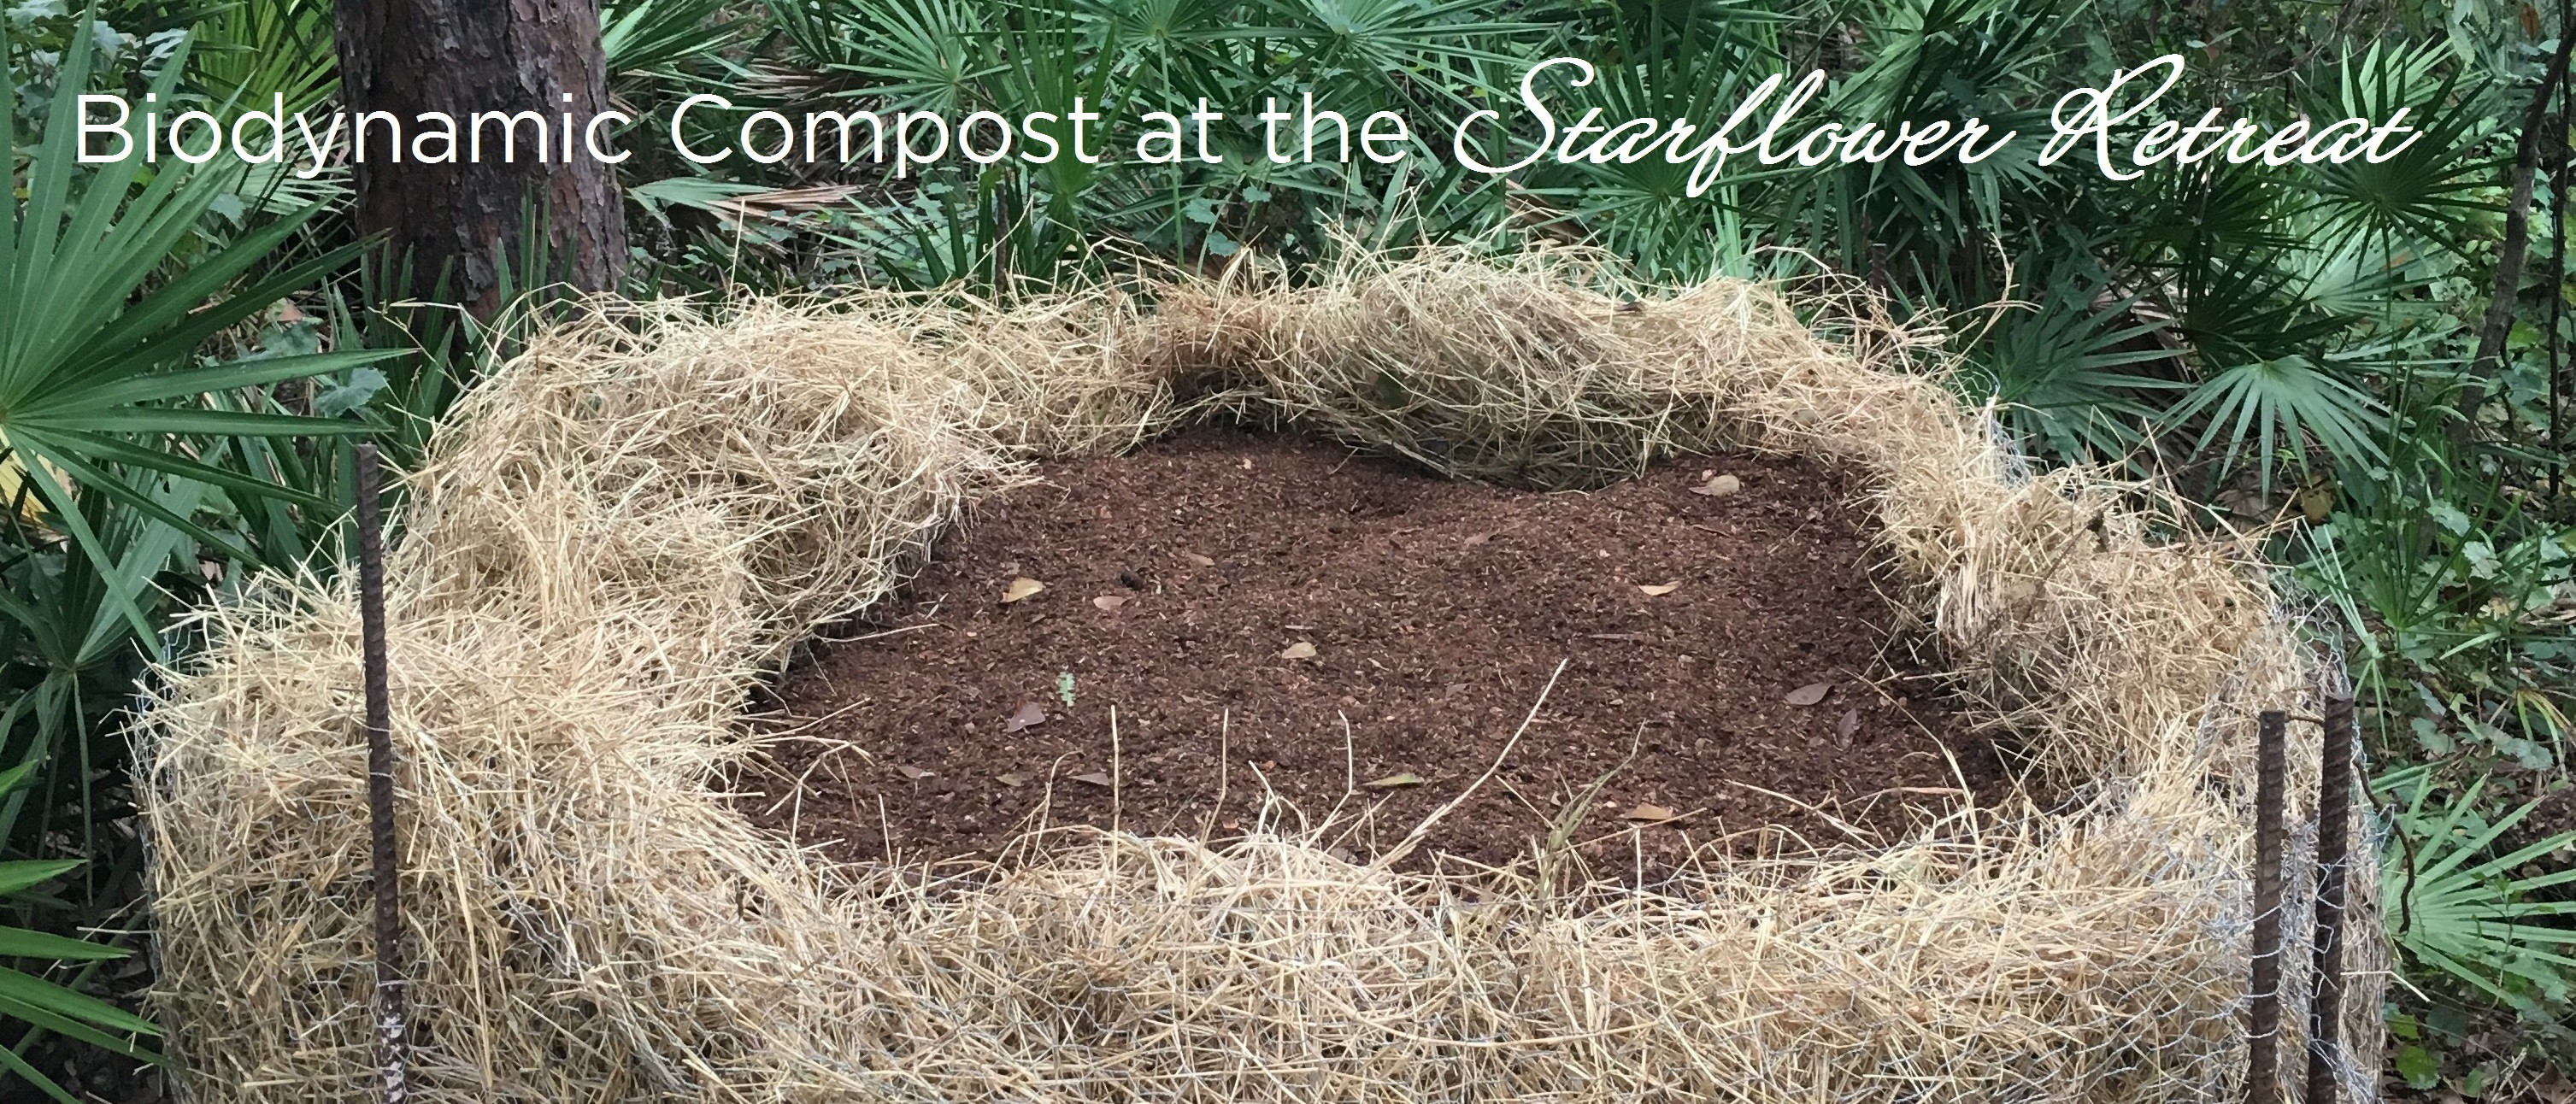 Biodynamic Compost at the Starflower Retreat